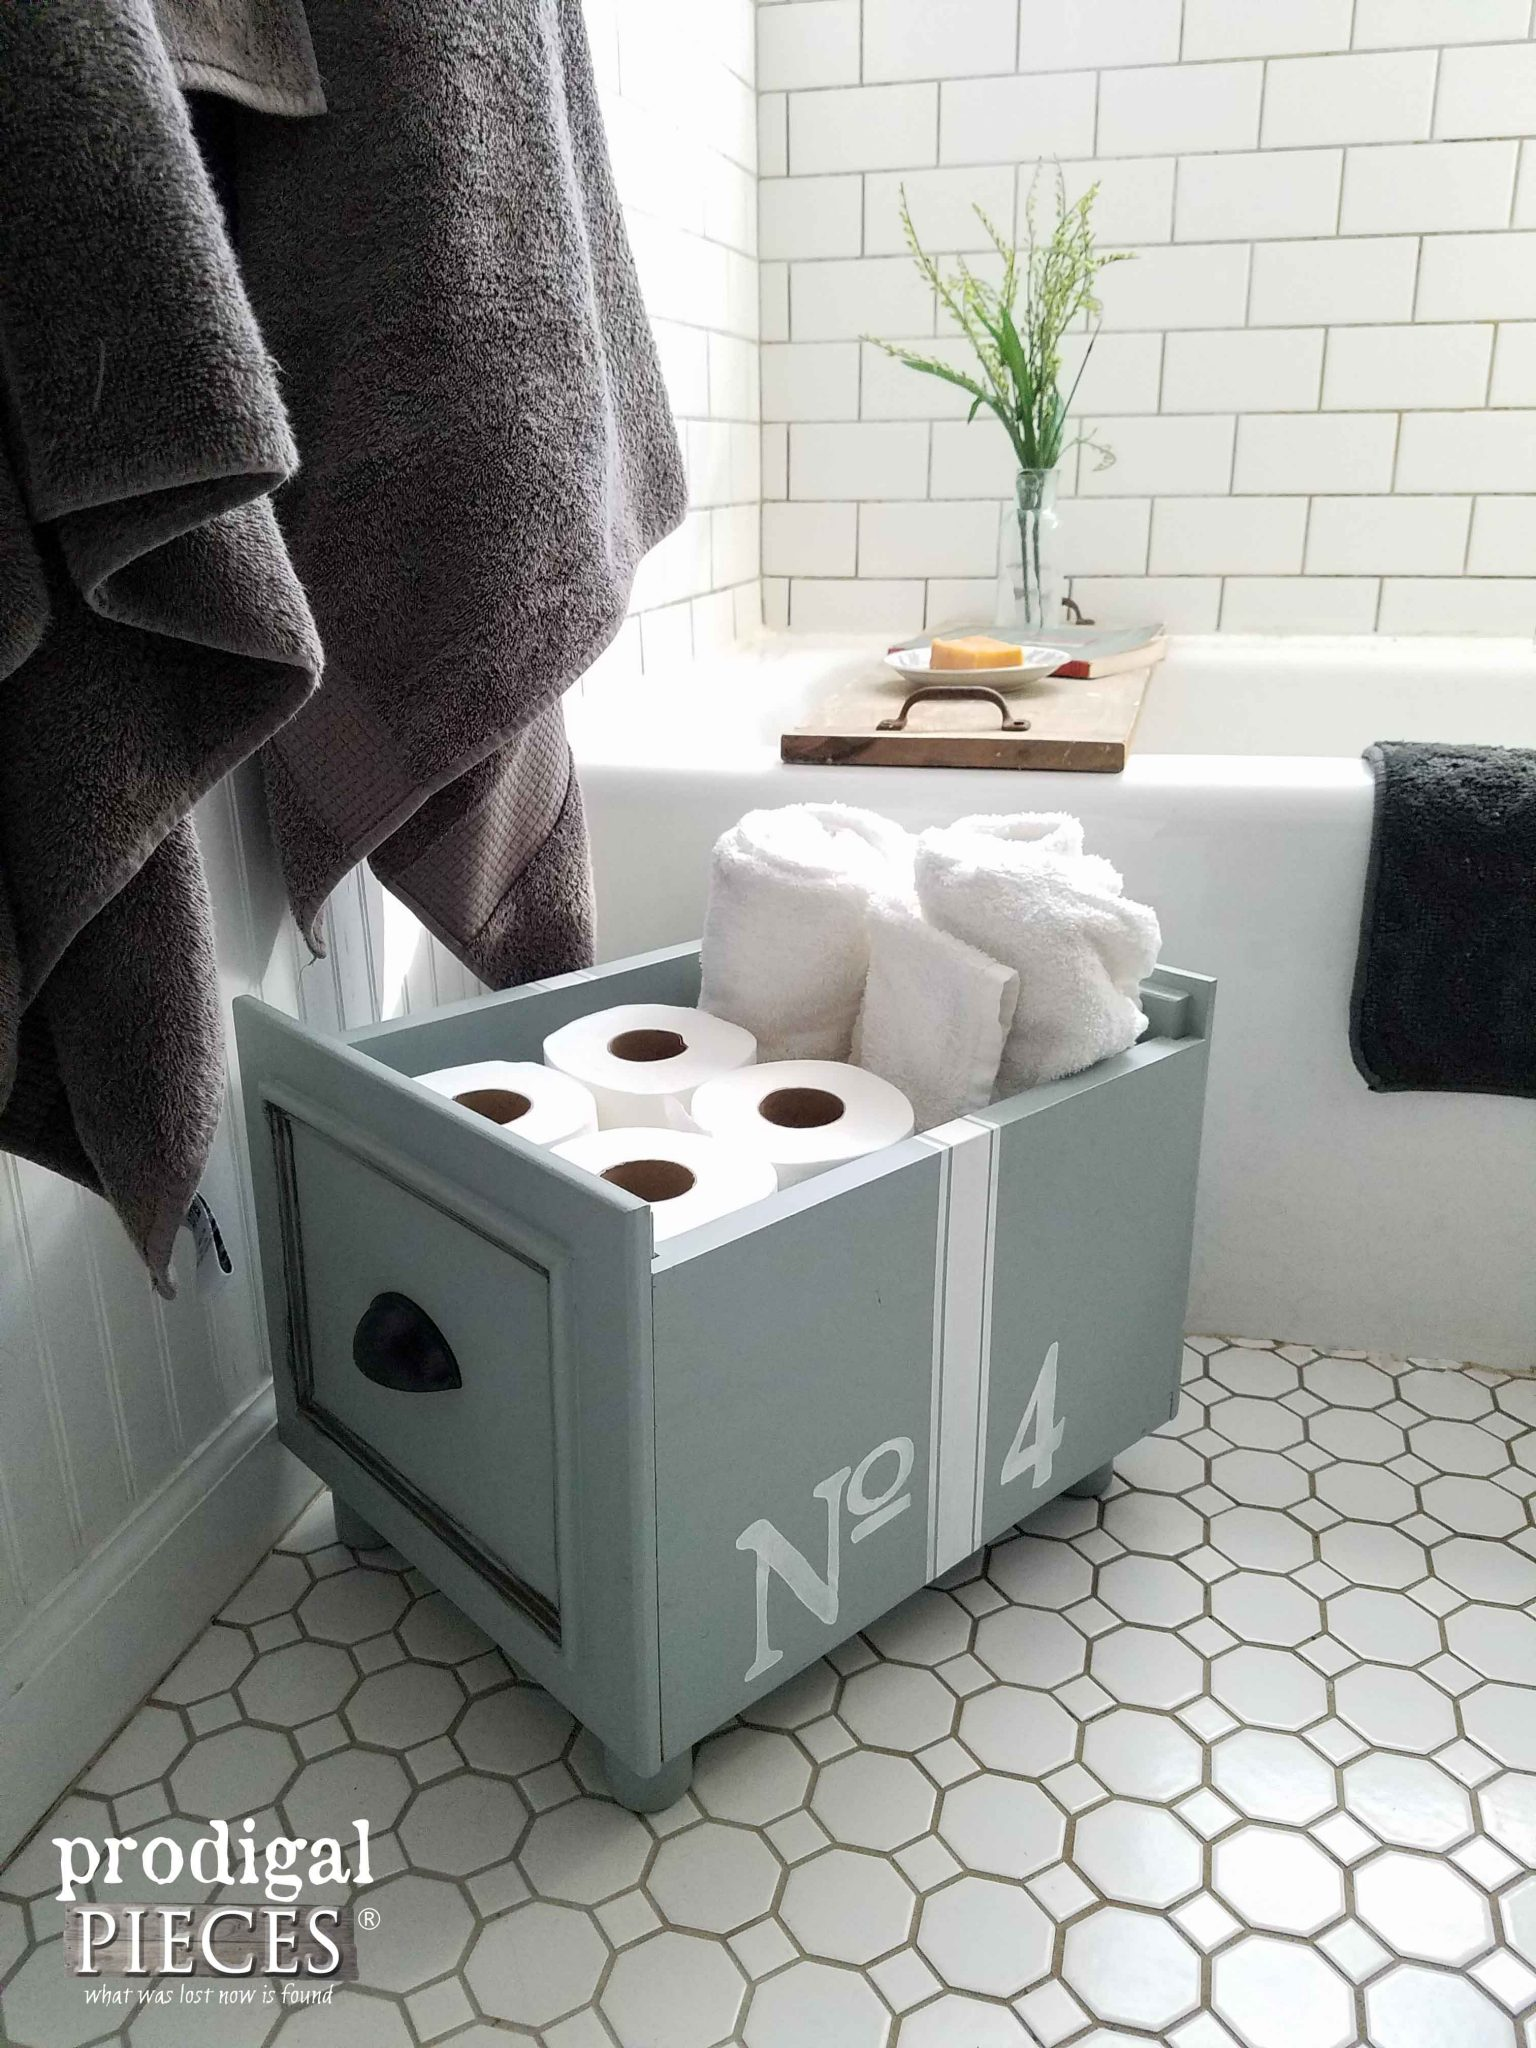 Upcycled Cabinet Doors Turned Storage Box by Prodigal Pieces | prodigalpieces.com